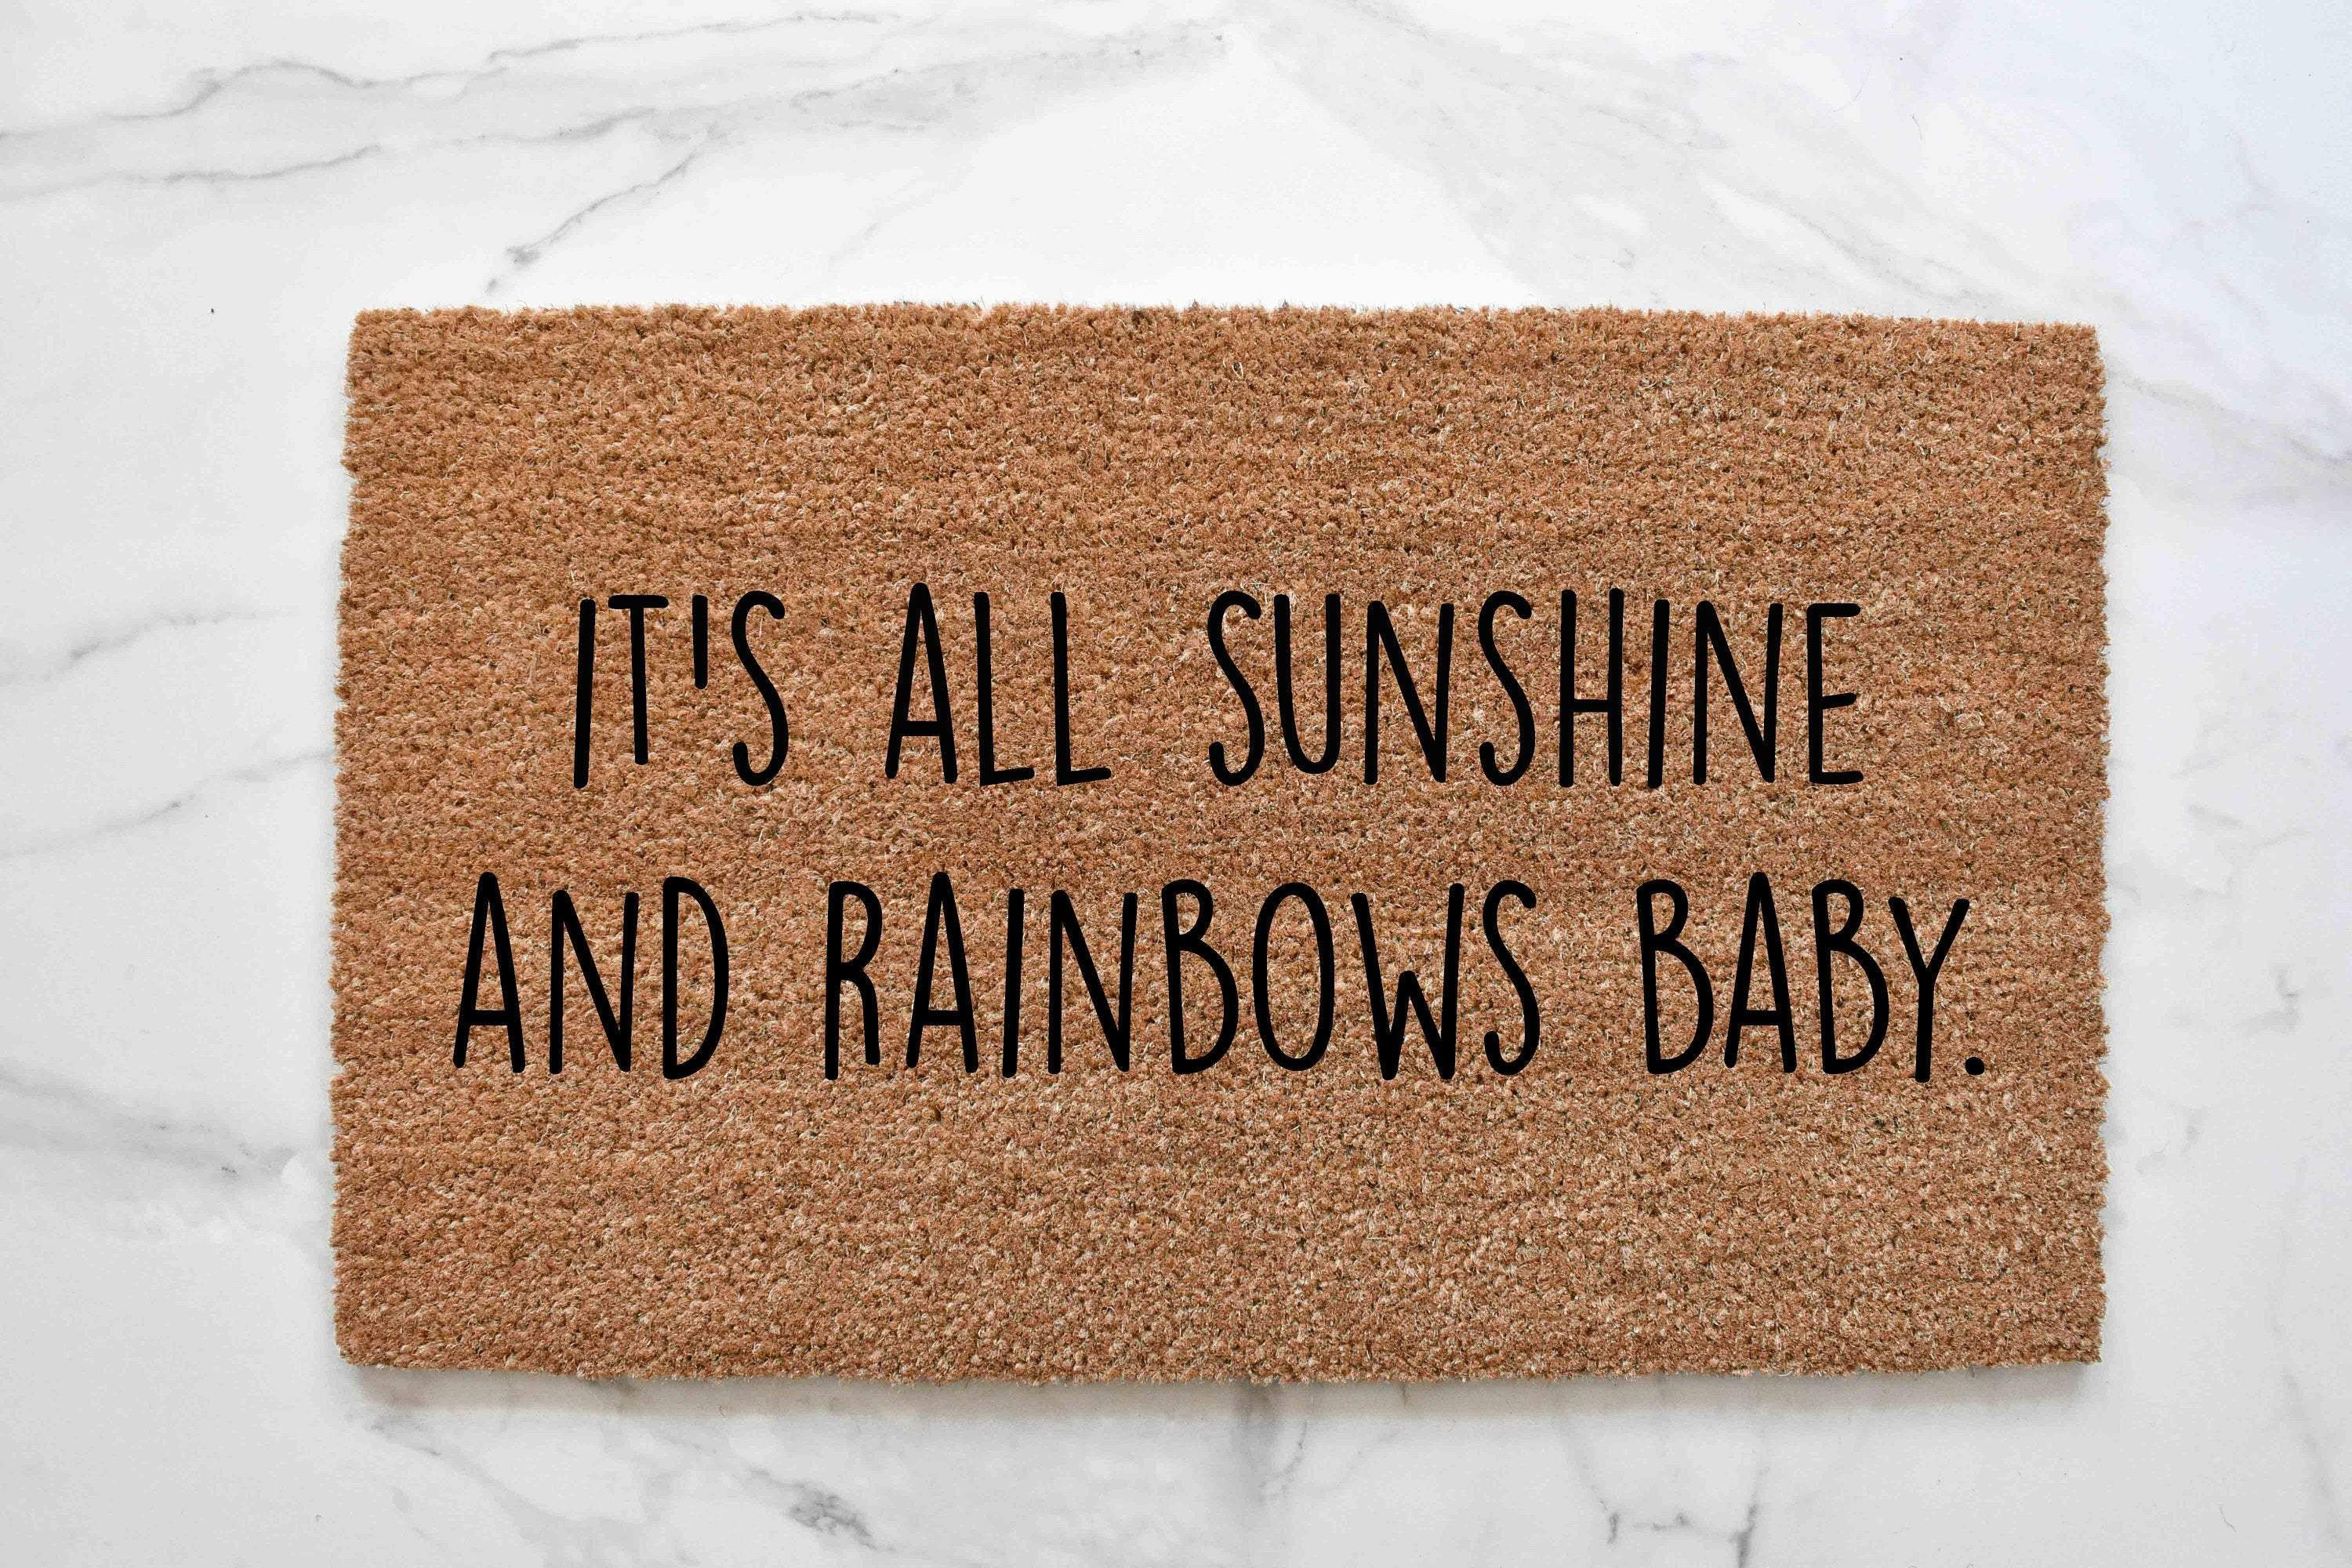 It's All Sunshine And Rainbows Baby Doormat - 24x36 NATURAL COIR